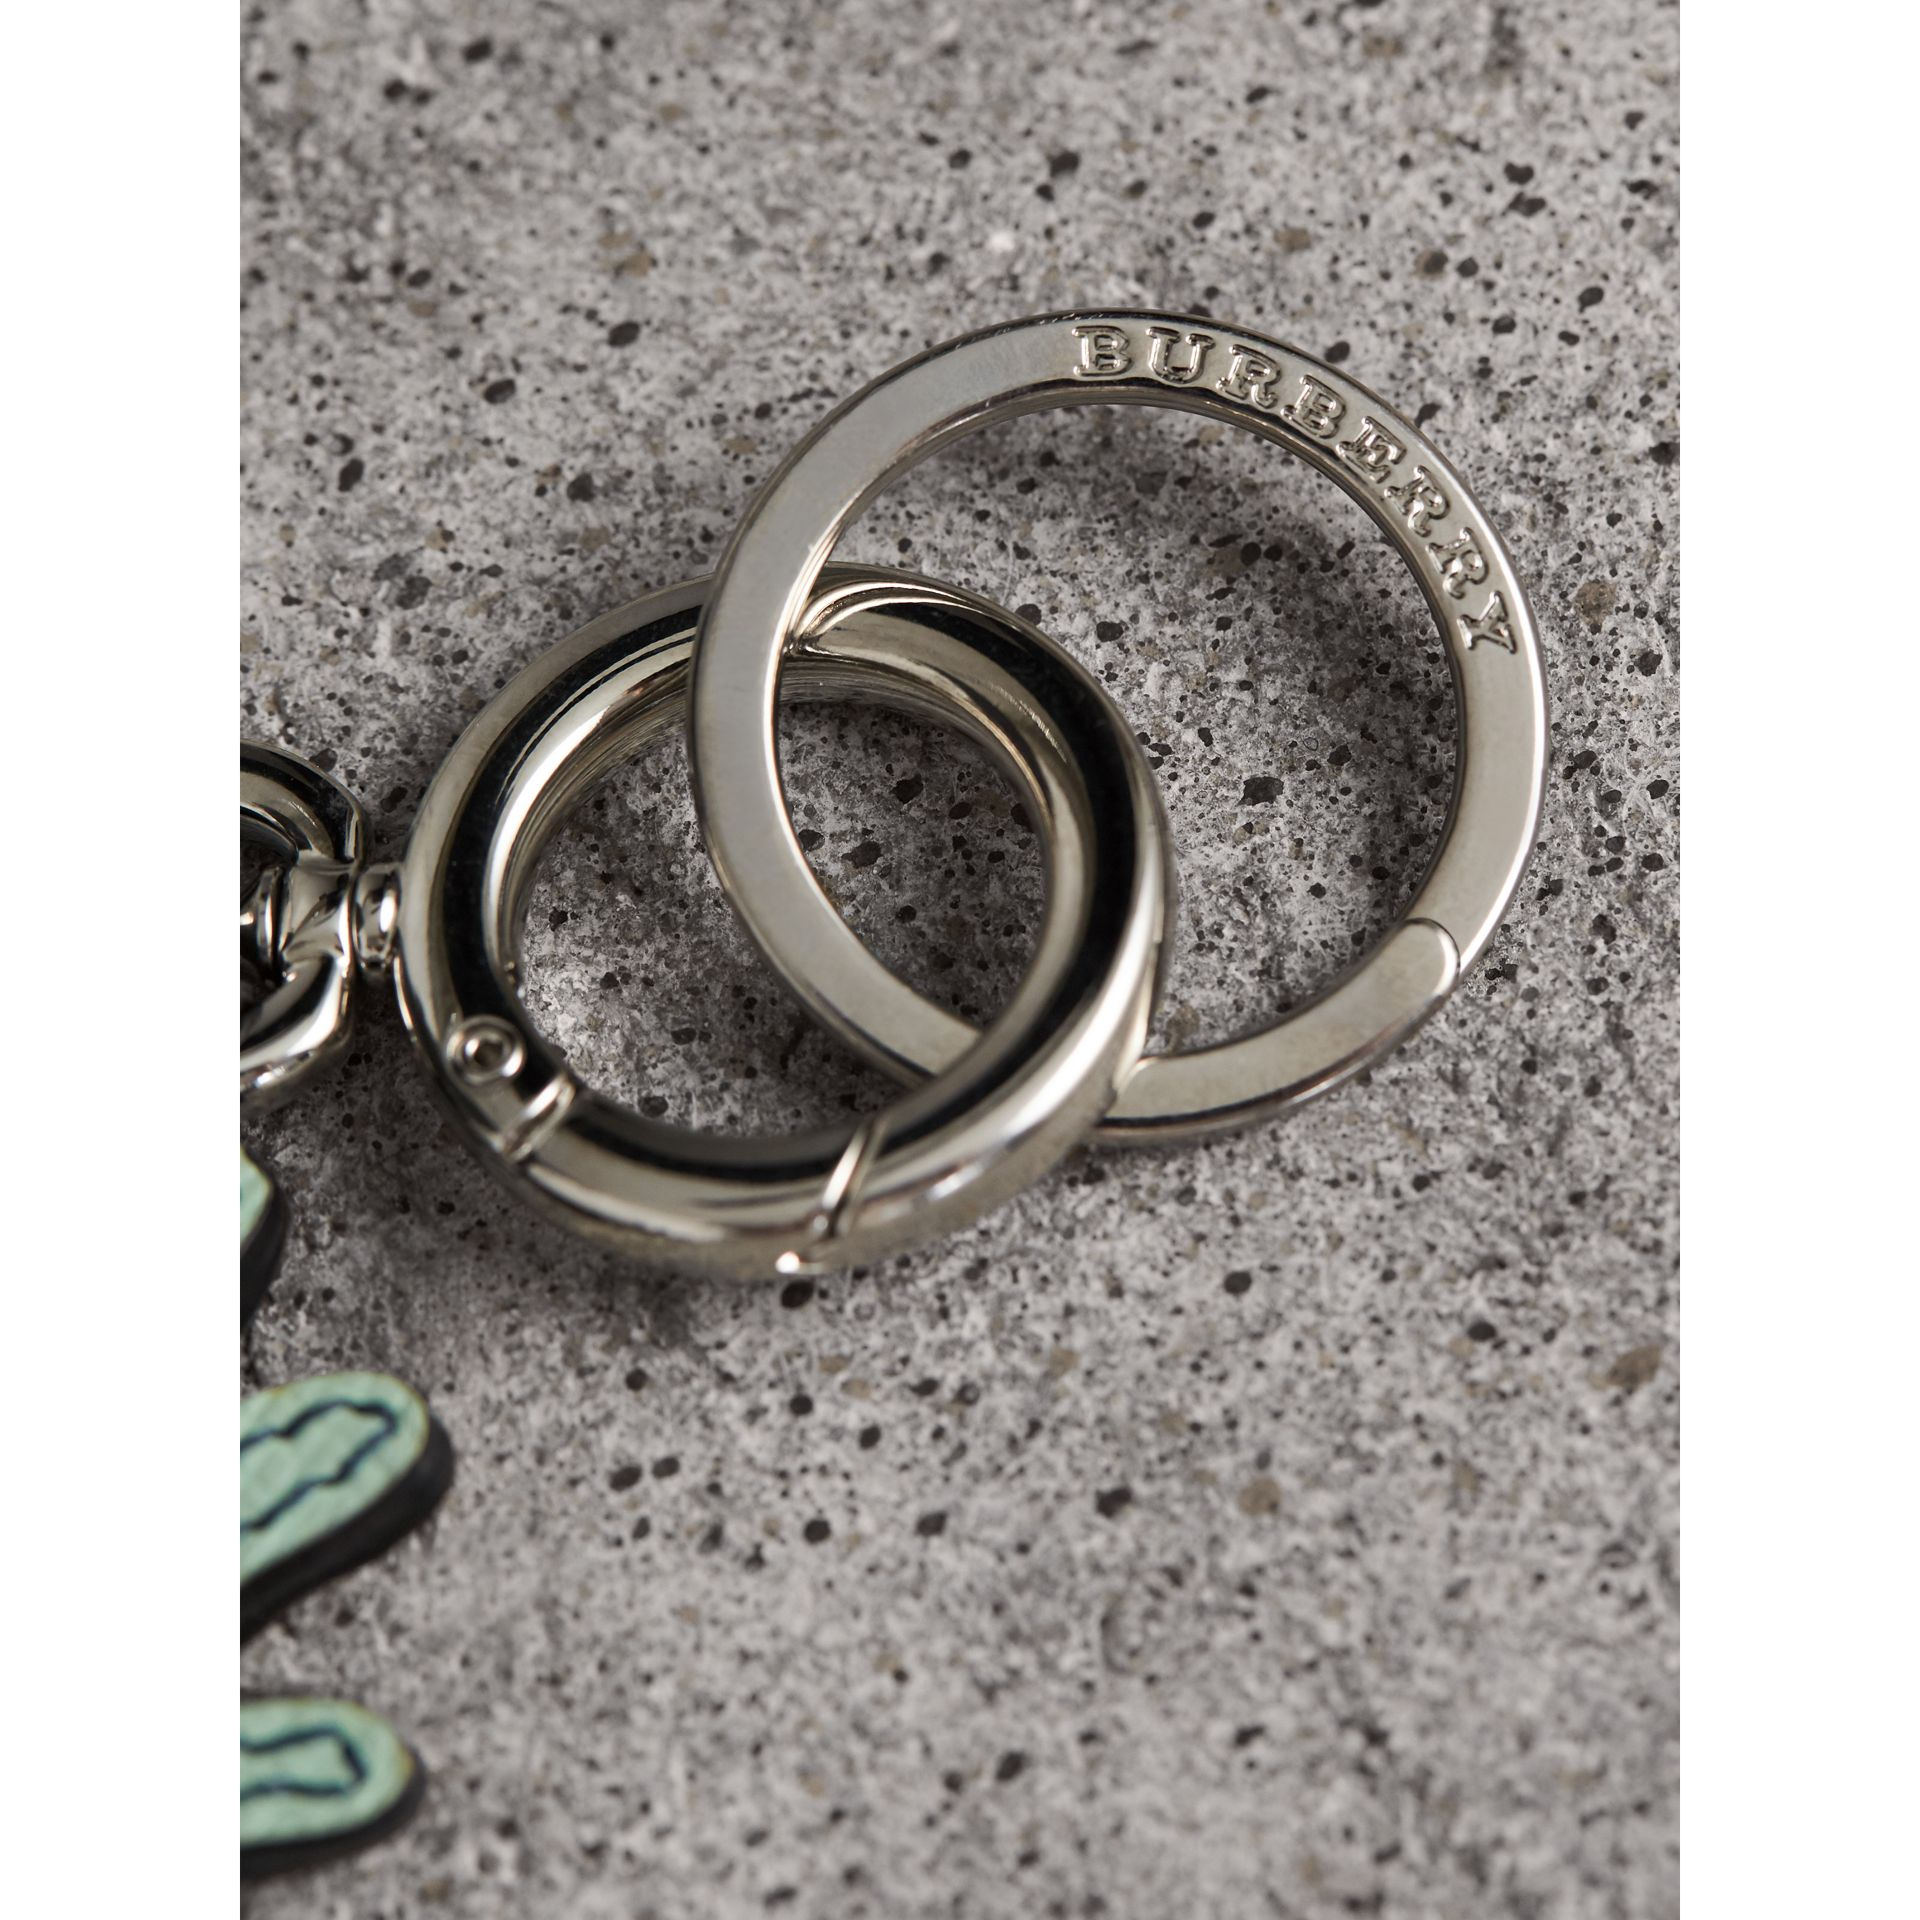 Creature Motif Leather Trim Key Ring in Light Mint - Men | Burberry - gallery image 2